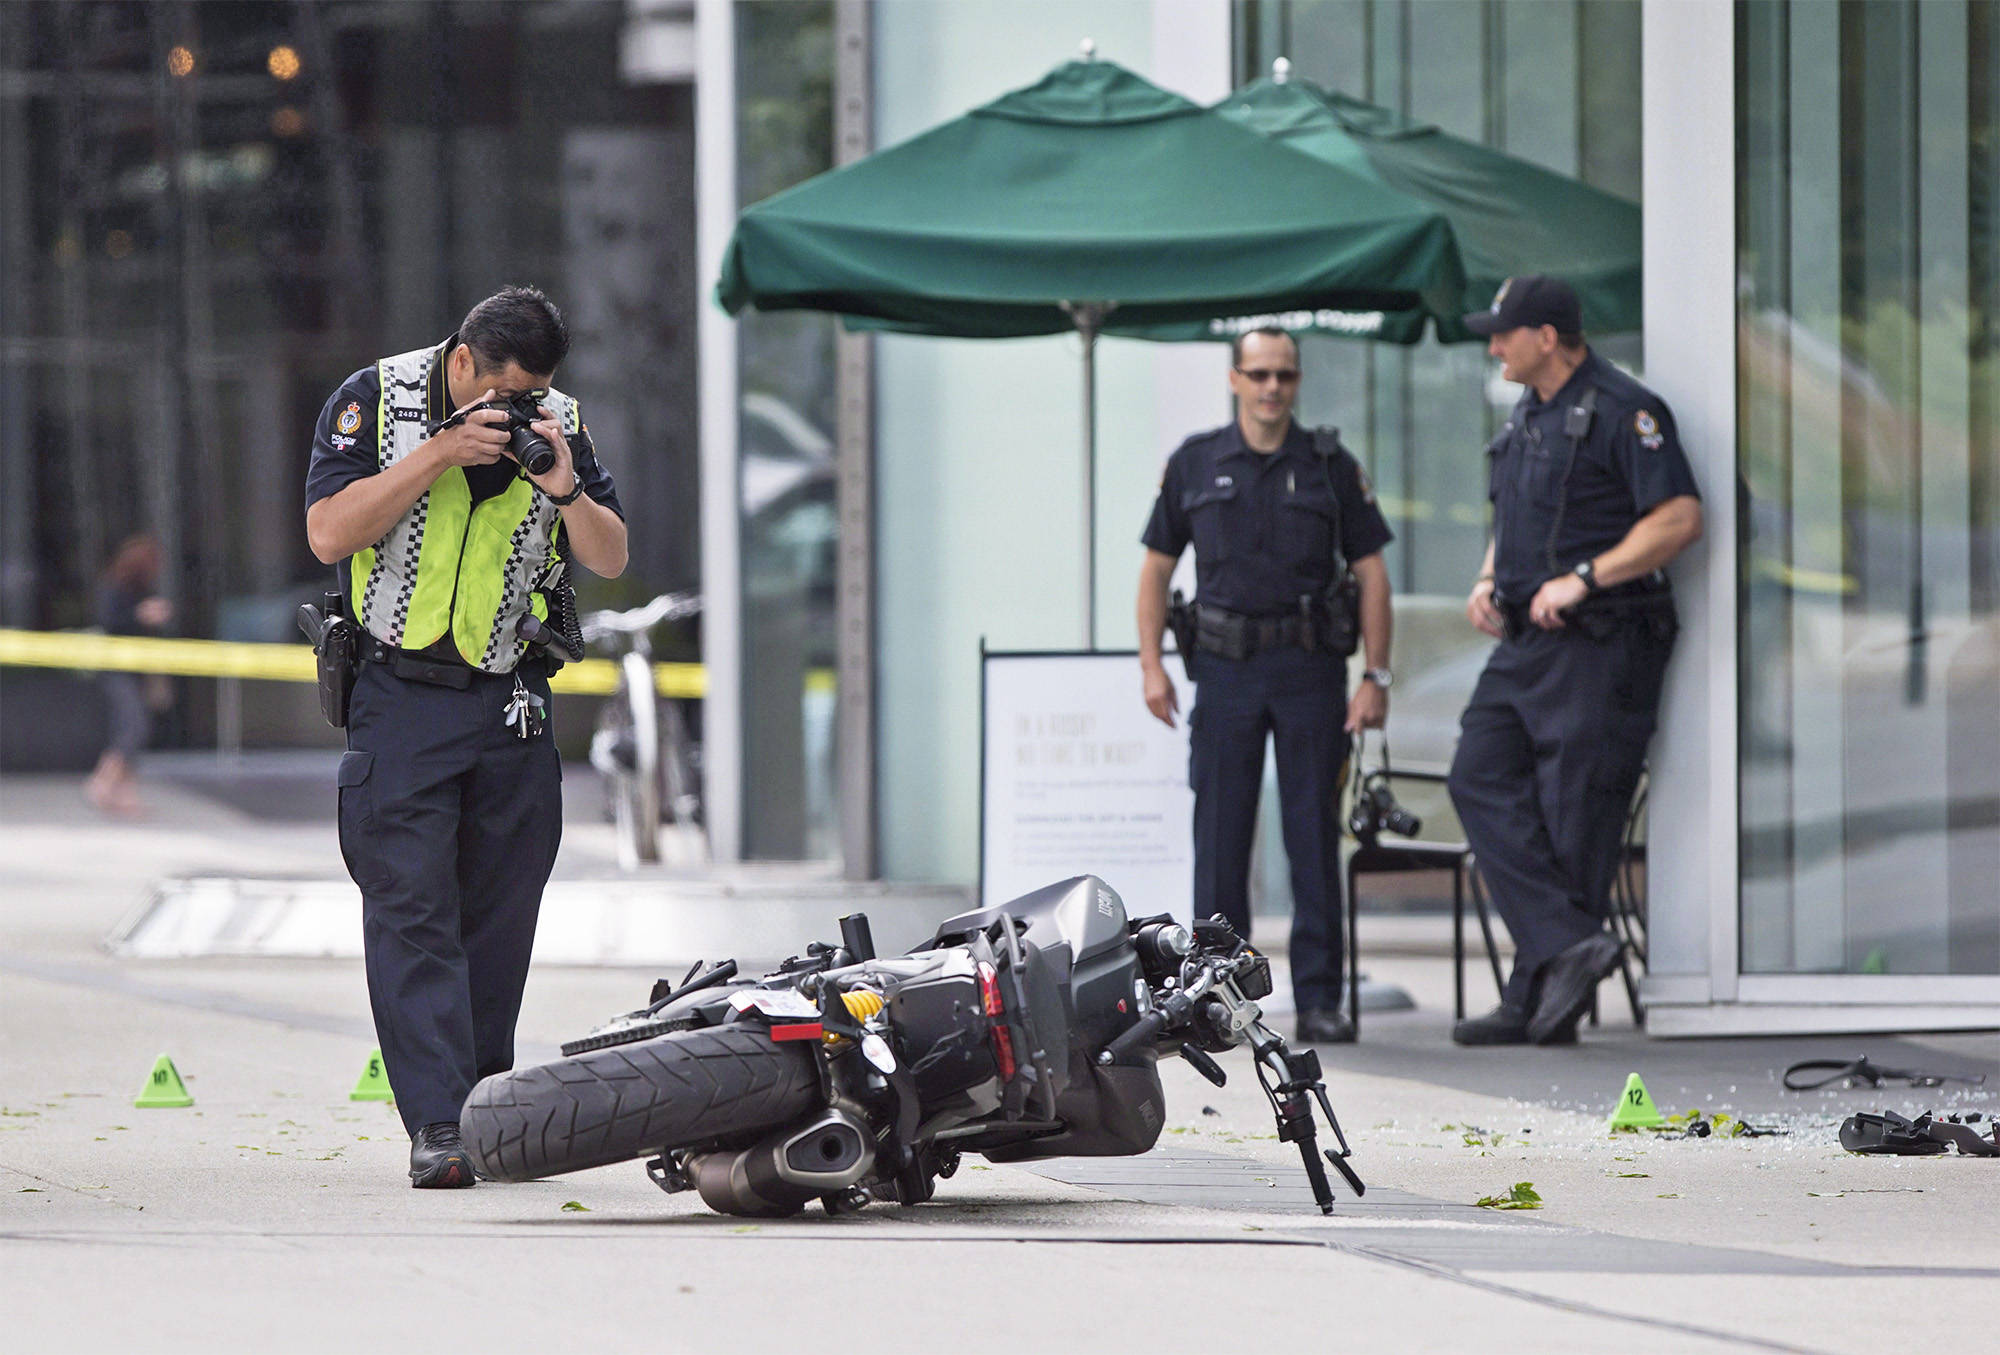 """A police officer photographs a motorcycle after a female stunt driver working on the movie """"Deadpool 2"""" died after a crash on set, in Vancouver, B.C., on Monday August 14, 2017. British Columbia's workplace safety agency says multiple failures of a production company contributed to the death of a stunt performer on the set of """"Deadpool 2.†THE CANADIAN PRESS/Darryl Dyck"""